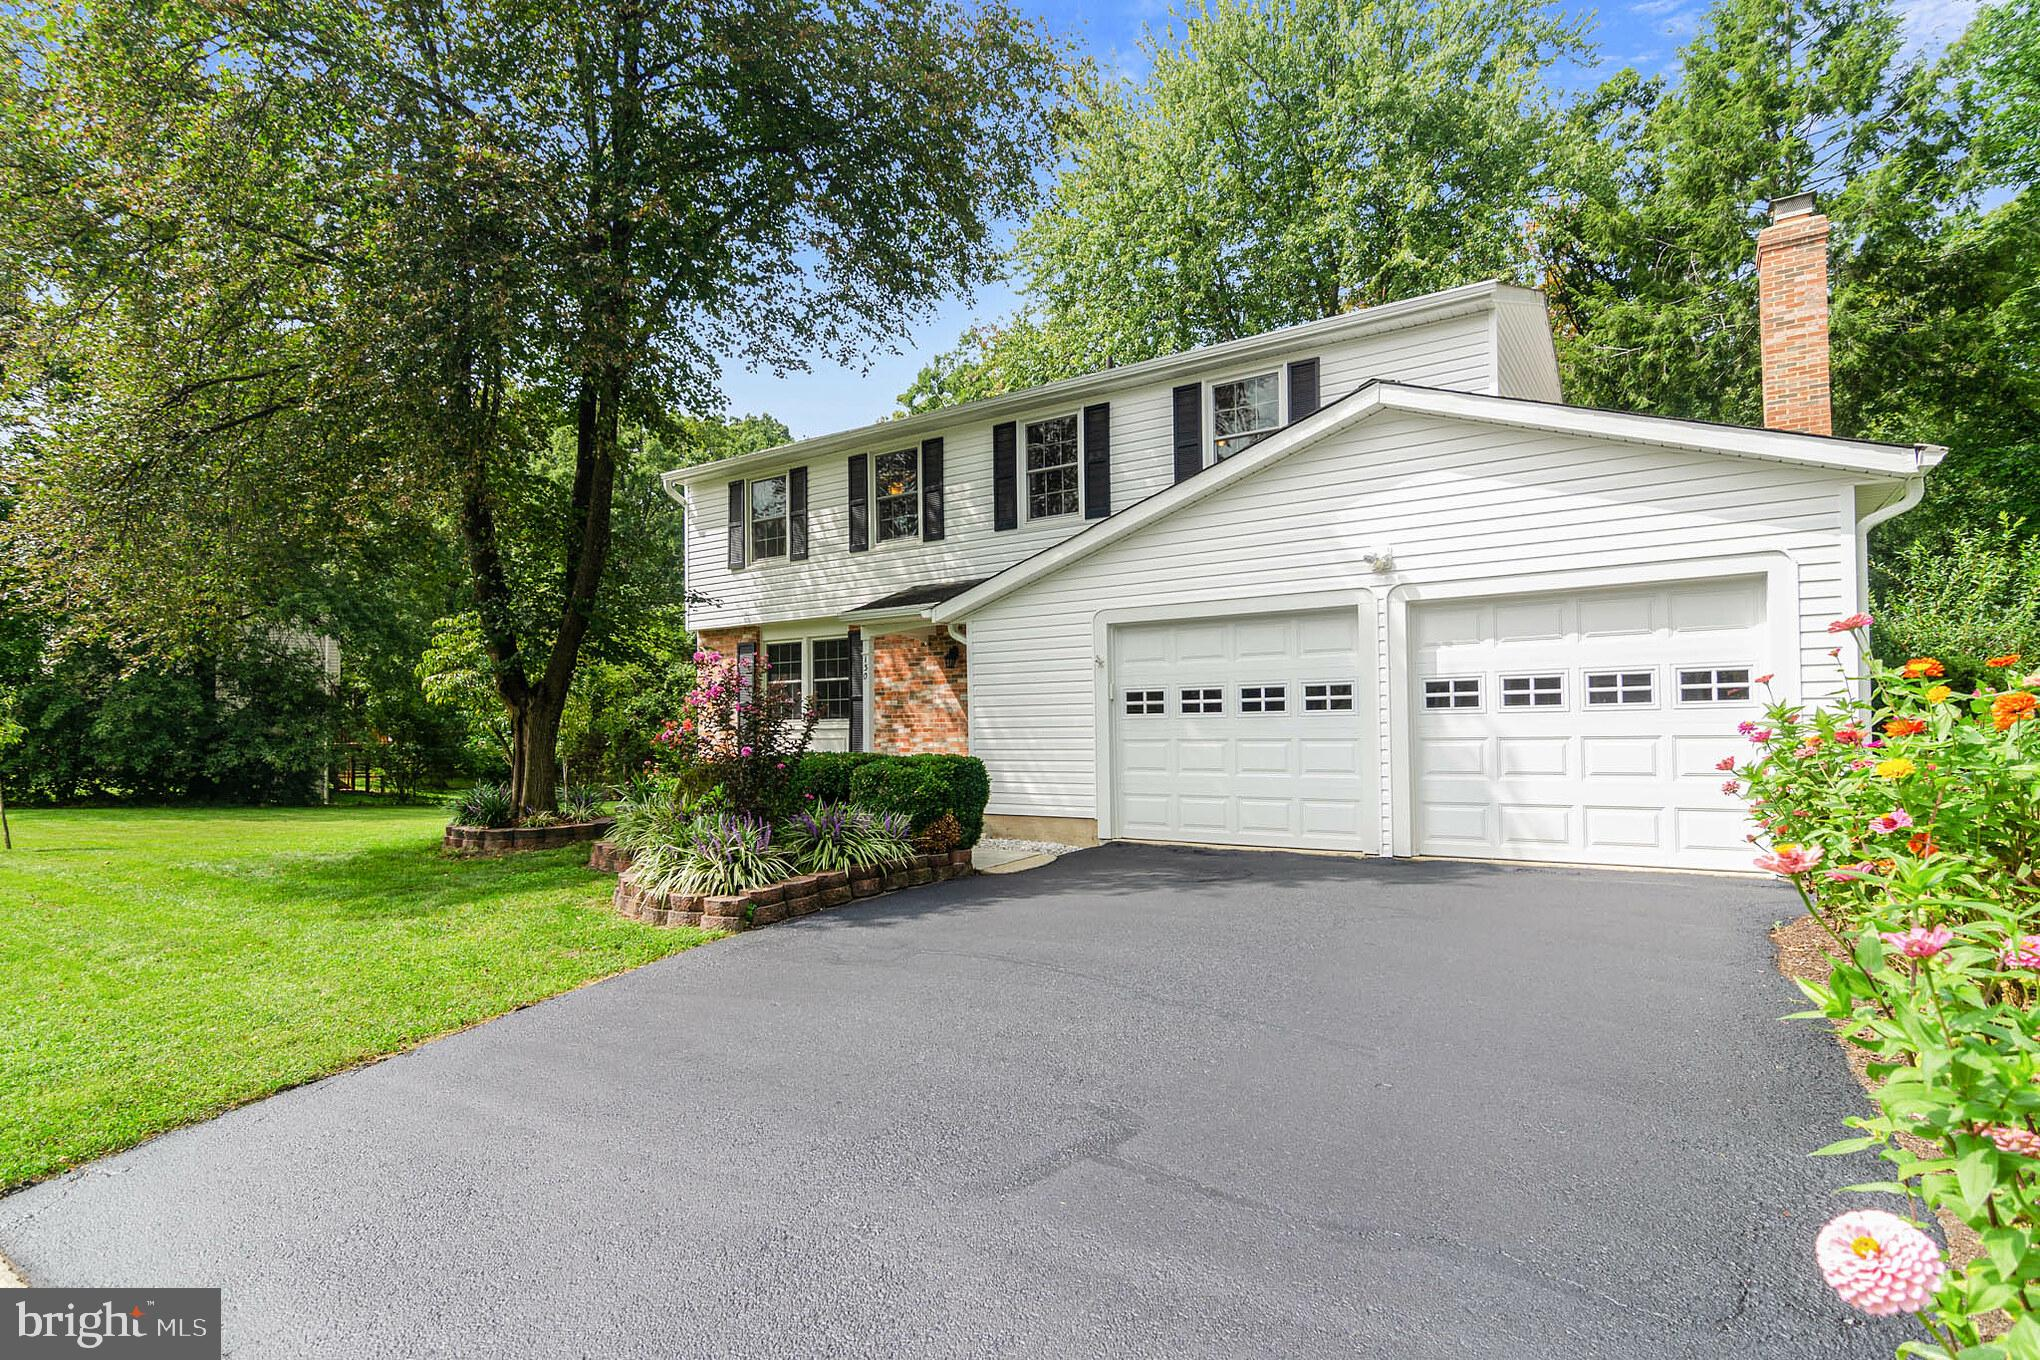 Fabulous find in Forest Ridge! This lovely 5-bedroom, 3 full-bathroom, 2,624 total sq. ft. home is M